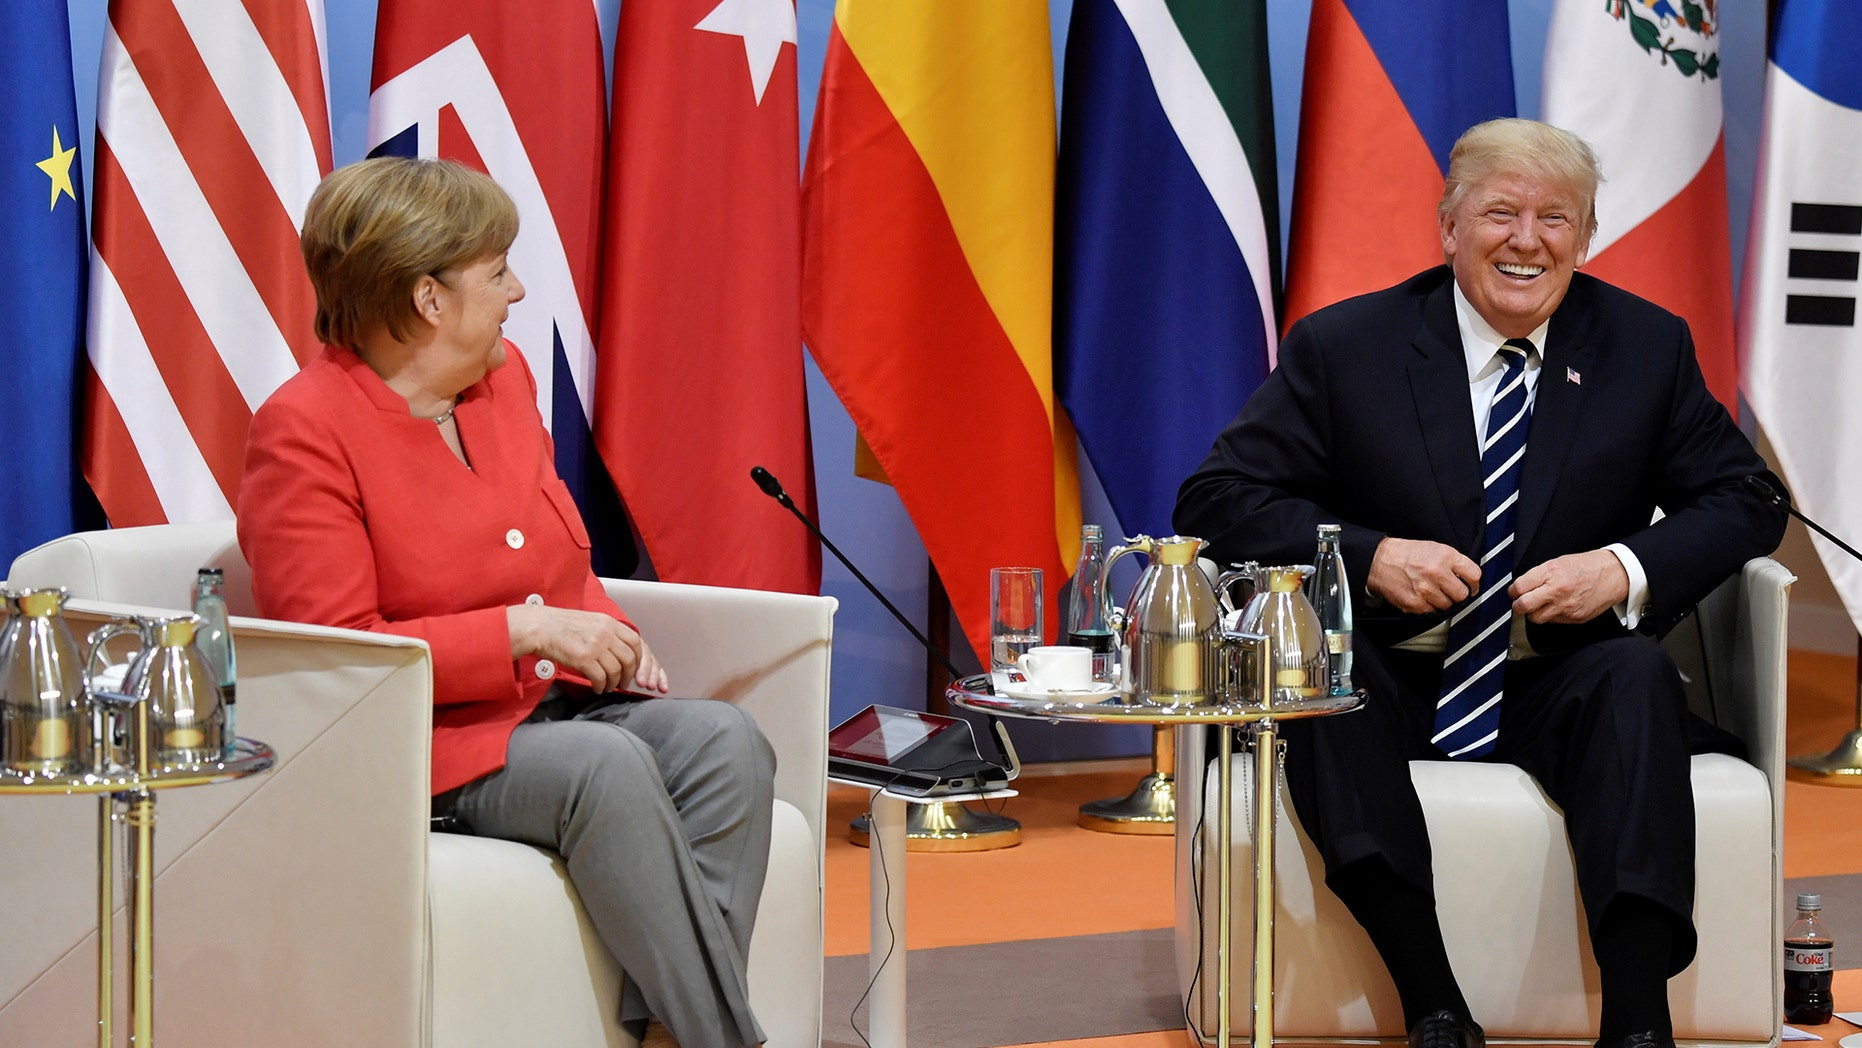 """German Chancellor Angela Merkel and US President Donald Trump share a laugh at the start of the """"retreat meeting"""" on the first day of the G20 summit in Hamburg, Germany, July 7, 2017. REUTERS/John MACDOUGALL,POOL - RTX3AG9G"""